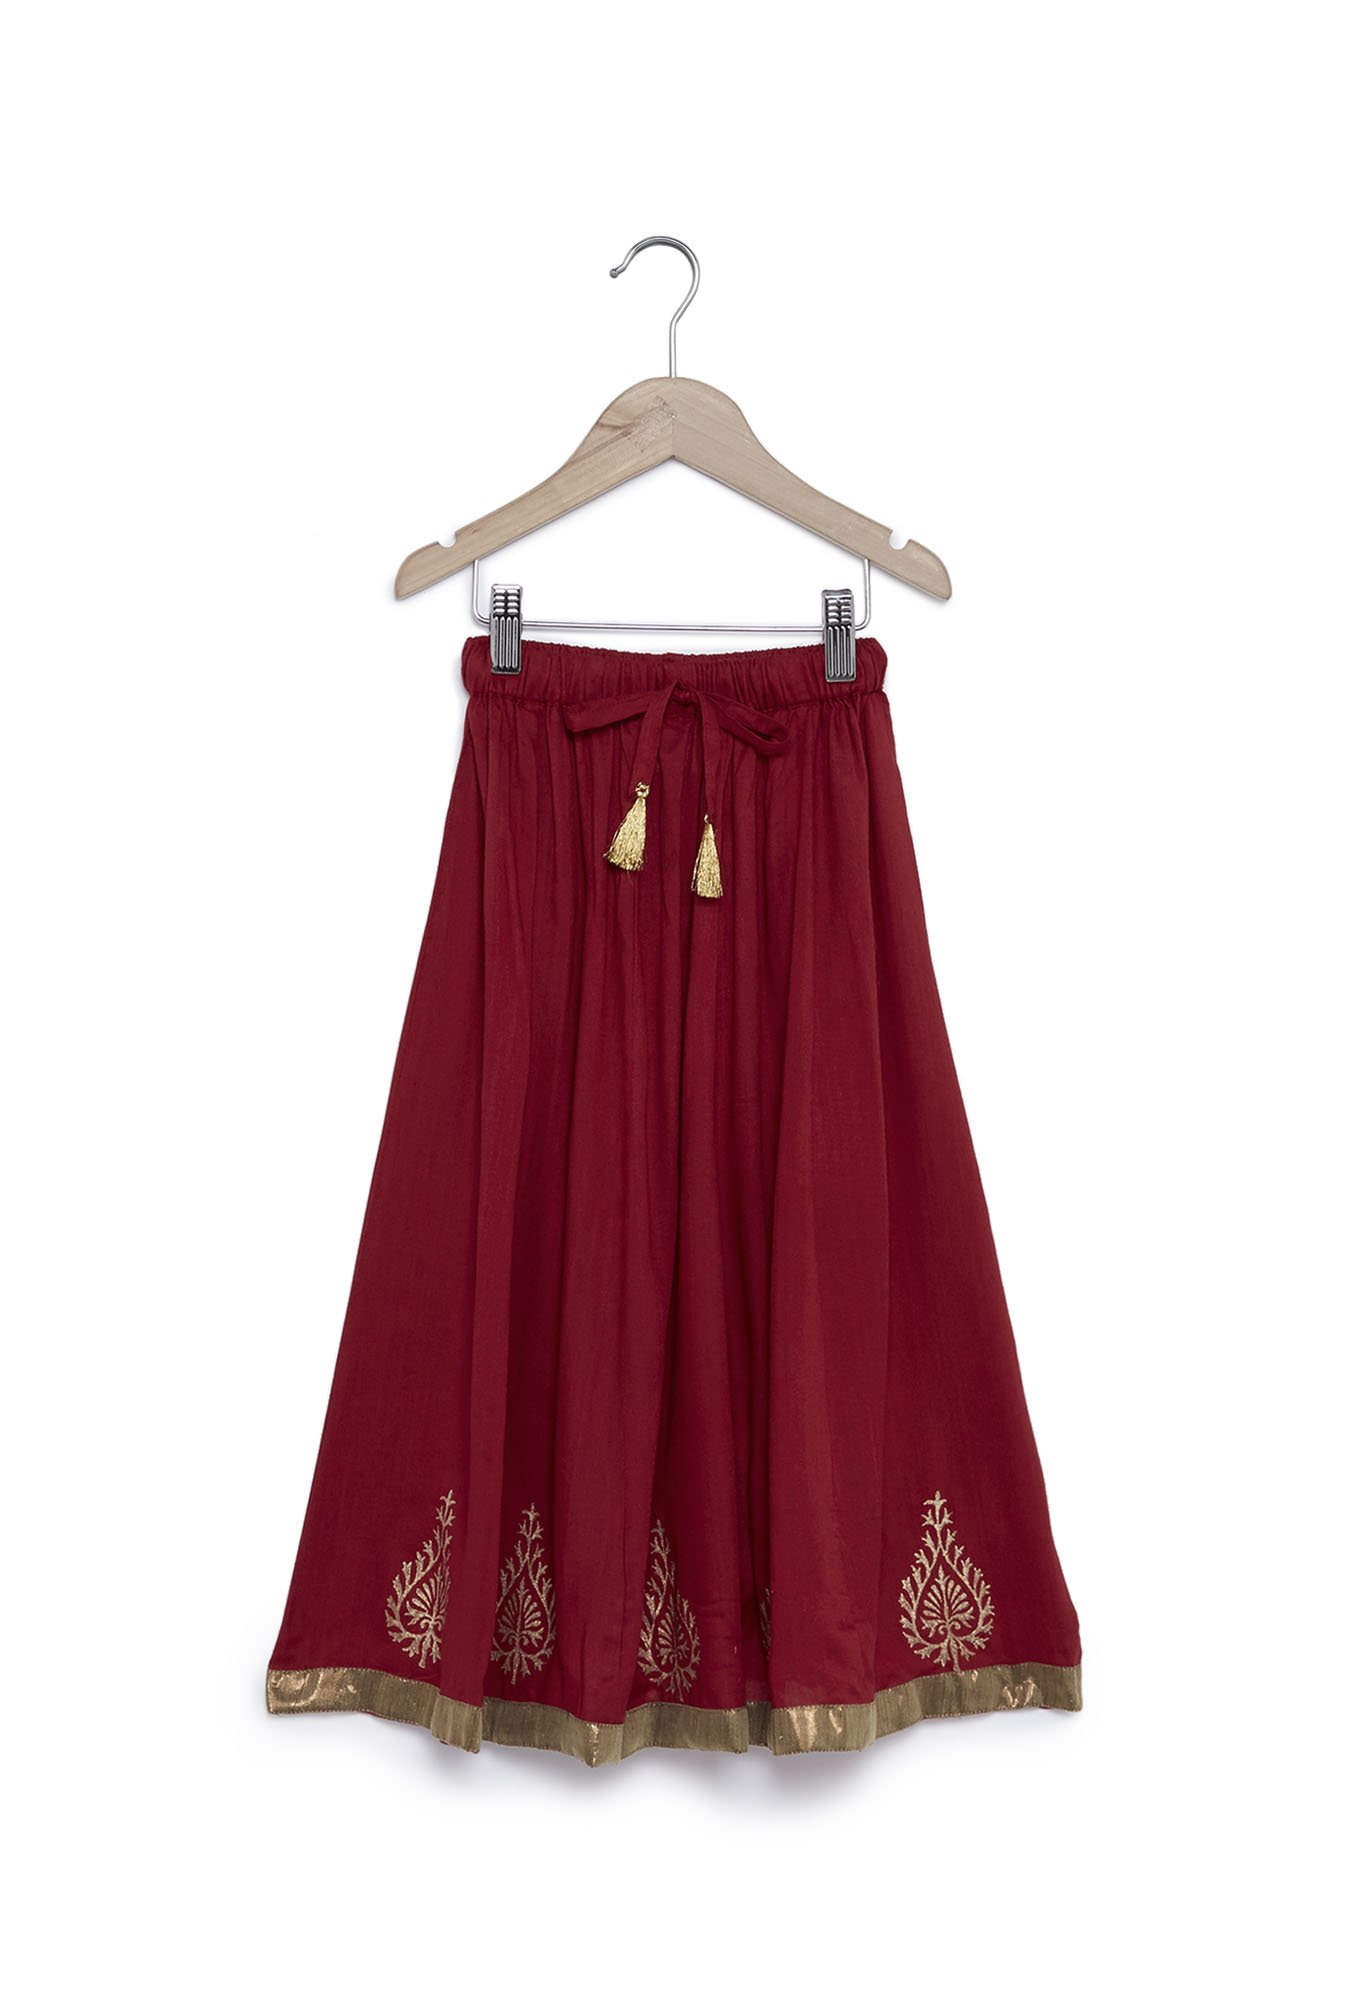 82fdd1fc7 Ethnic Tops For Skirts Online India